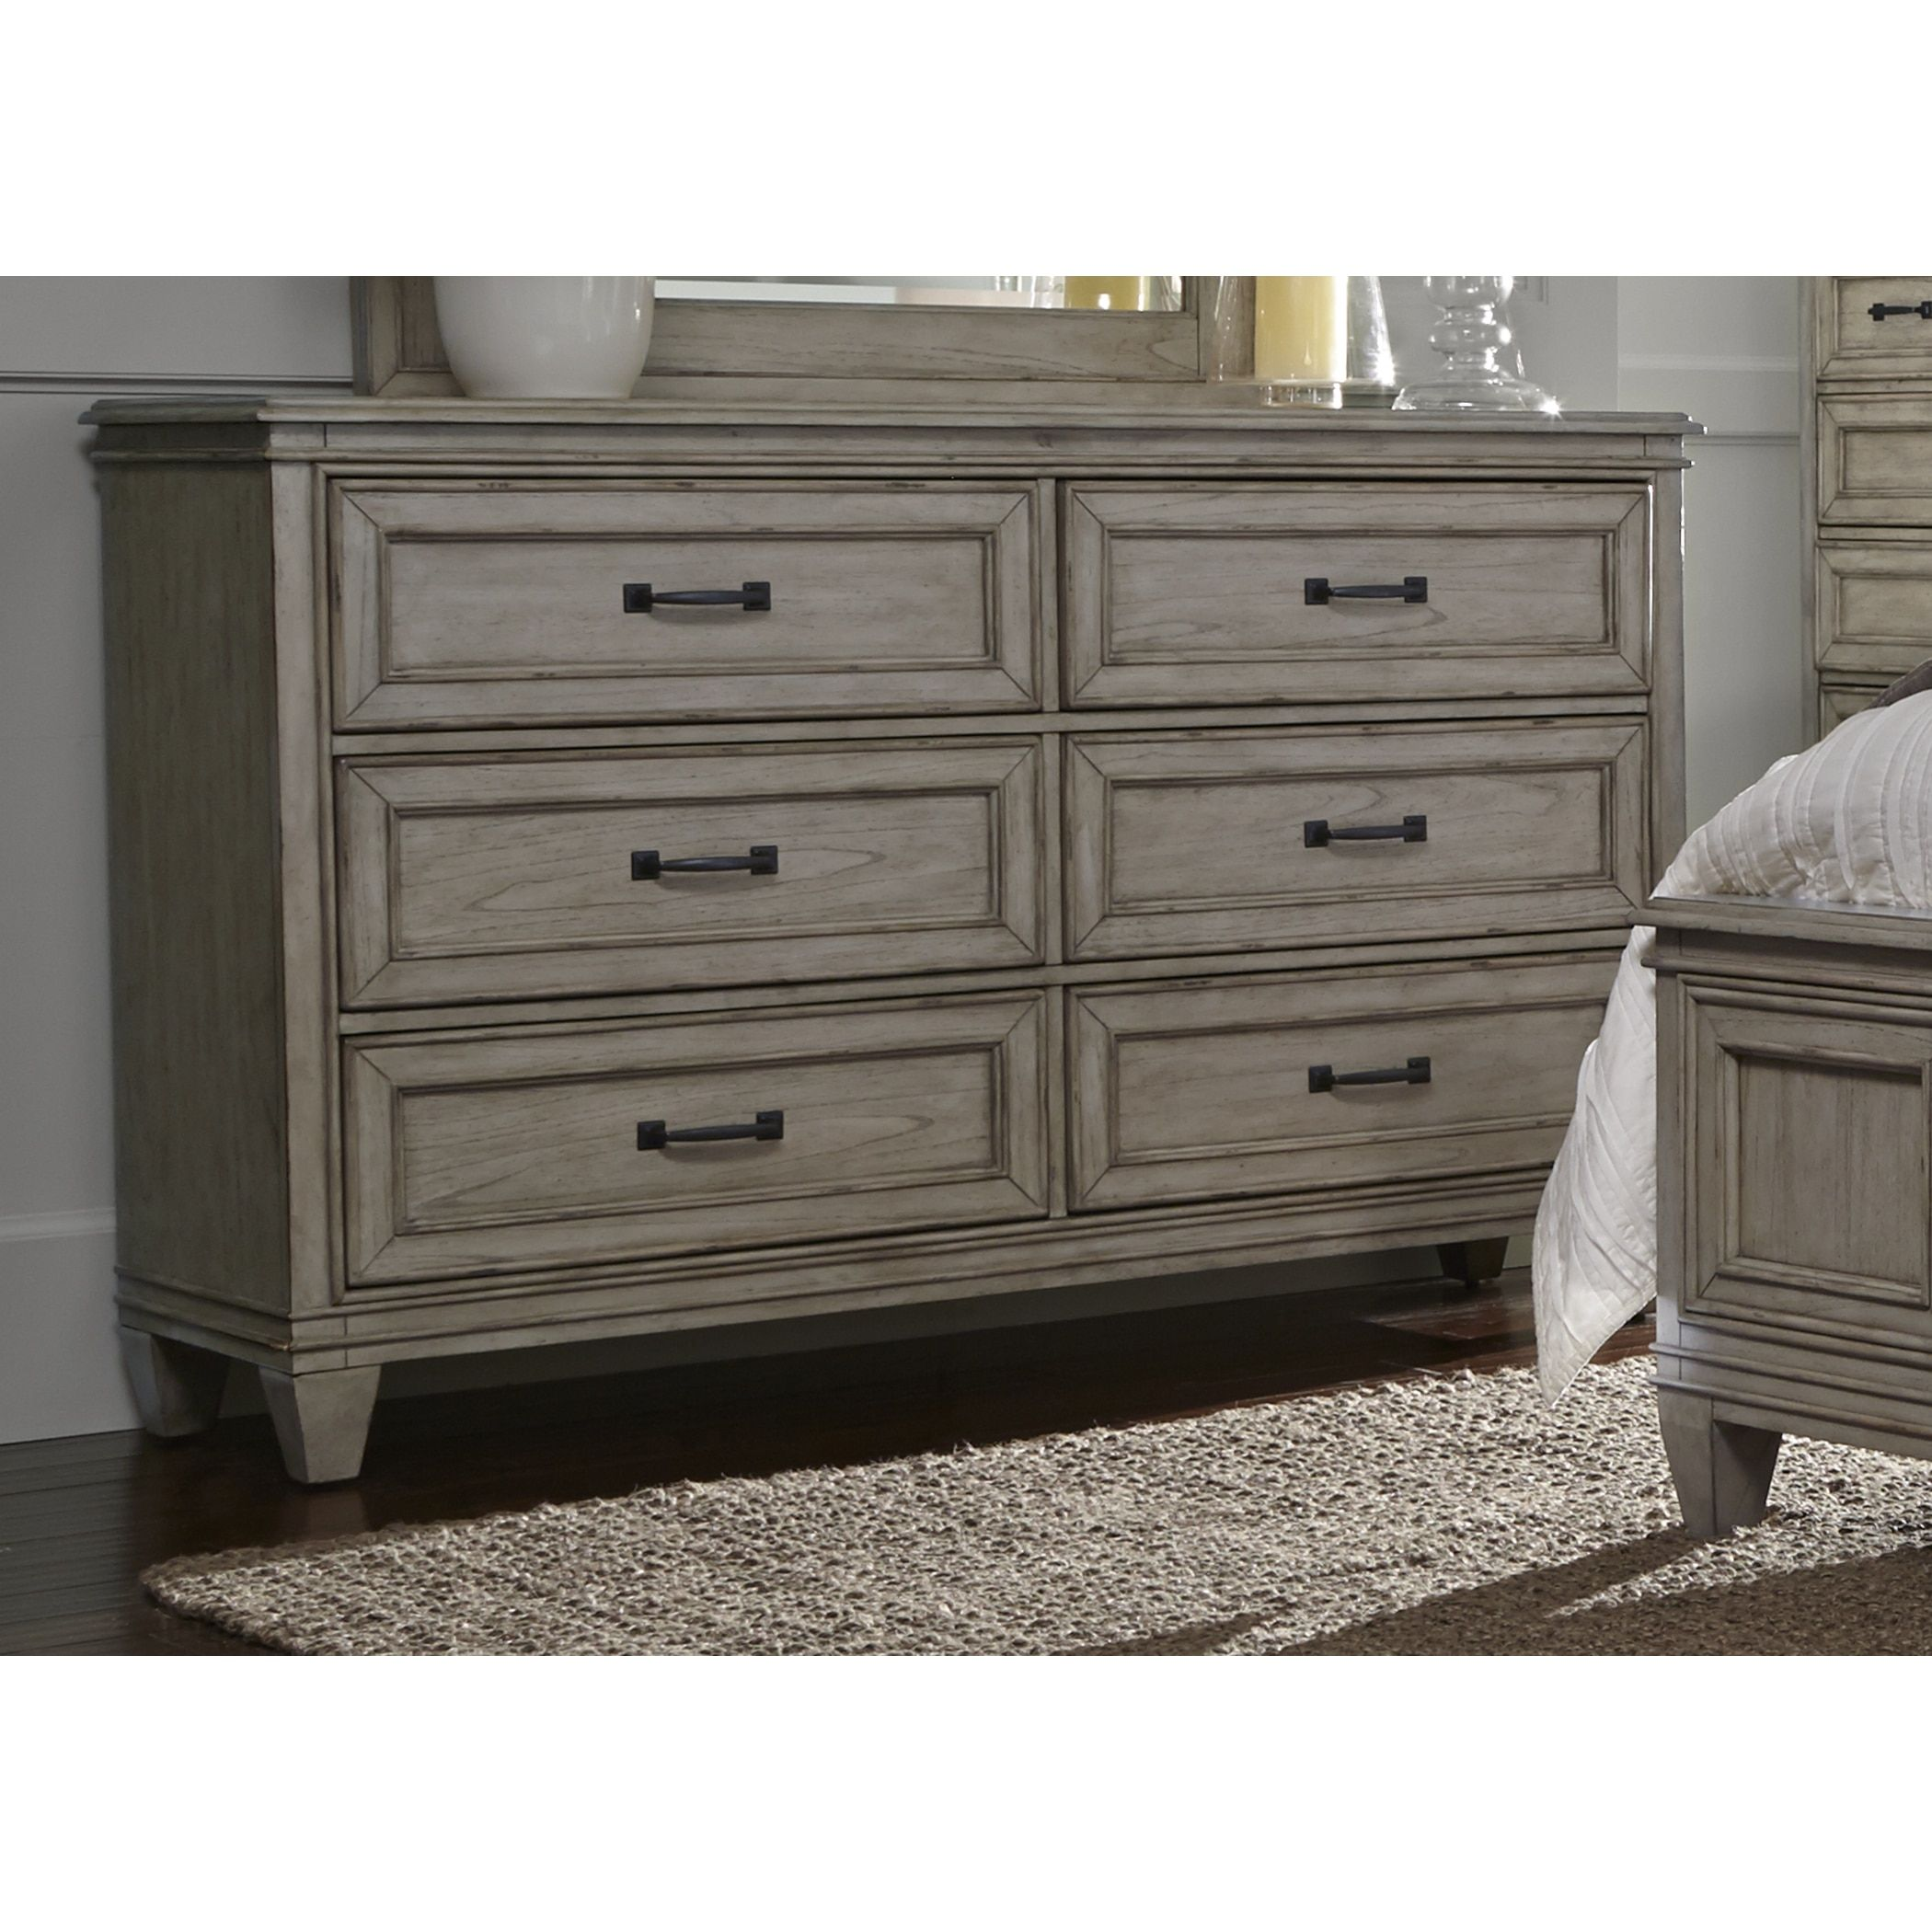 Overstock Com Online Shopping Bedding Furniture Electronics Jewelry Clothing More Liberty Furniture Dresser Drawers Cheap Bedroom Furniture